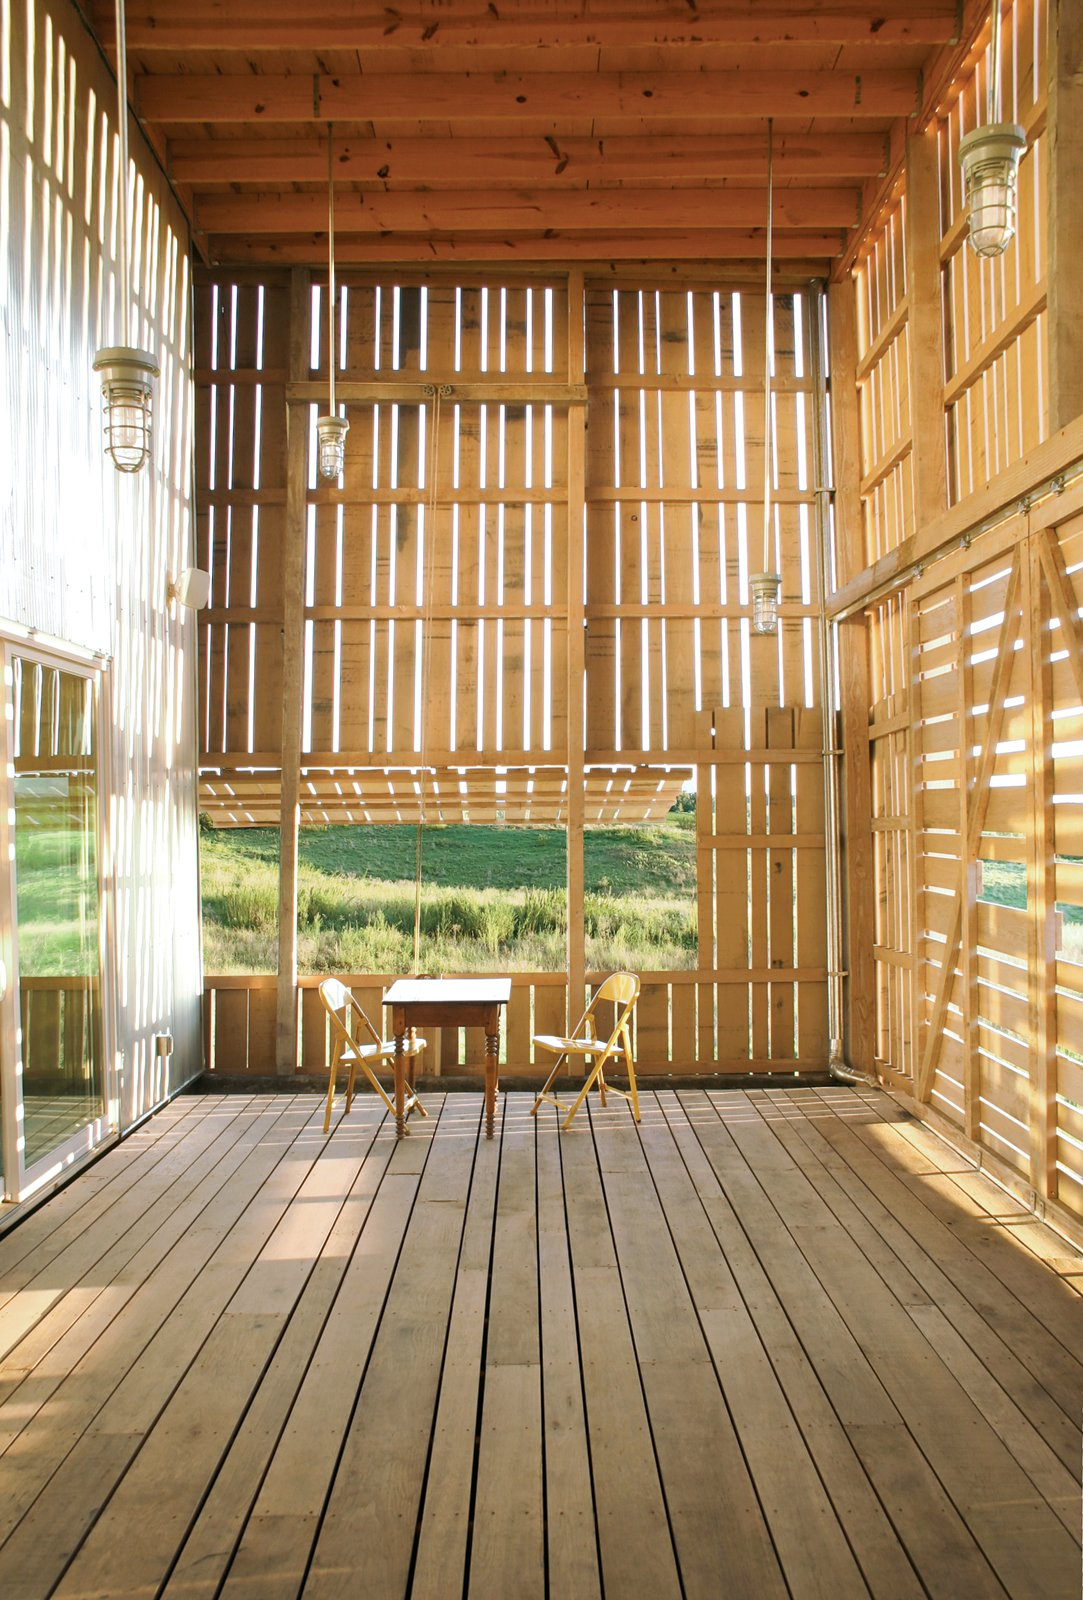 Outdoor and Wood Patio, Porch, Deck BLAIR NICHE PROJECT  At just $167 per square foot, this high-design, low-cost barn in rural Wisconsin is an American idyll.  Photos from Blair Niche Project